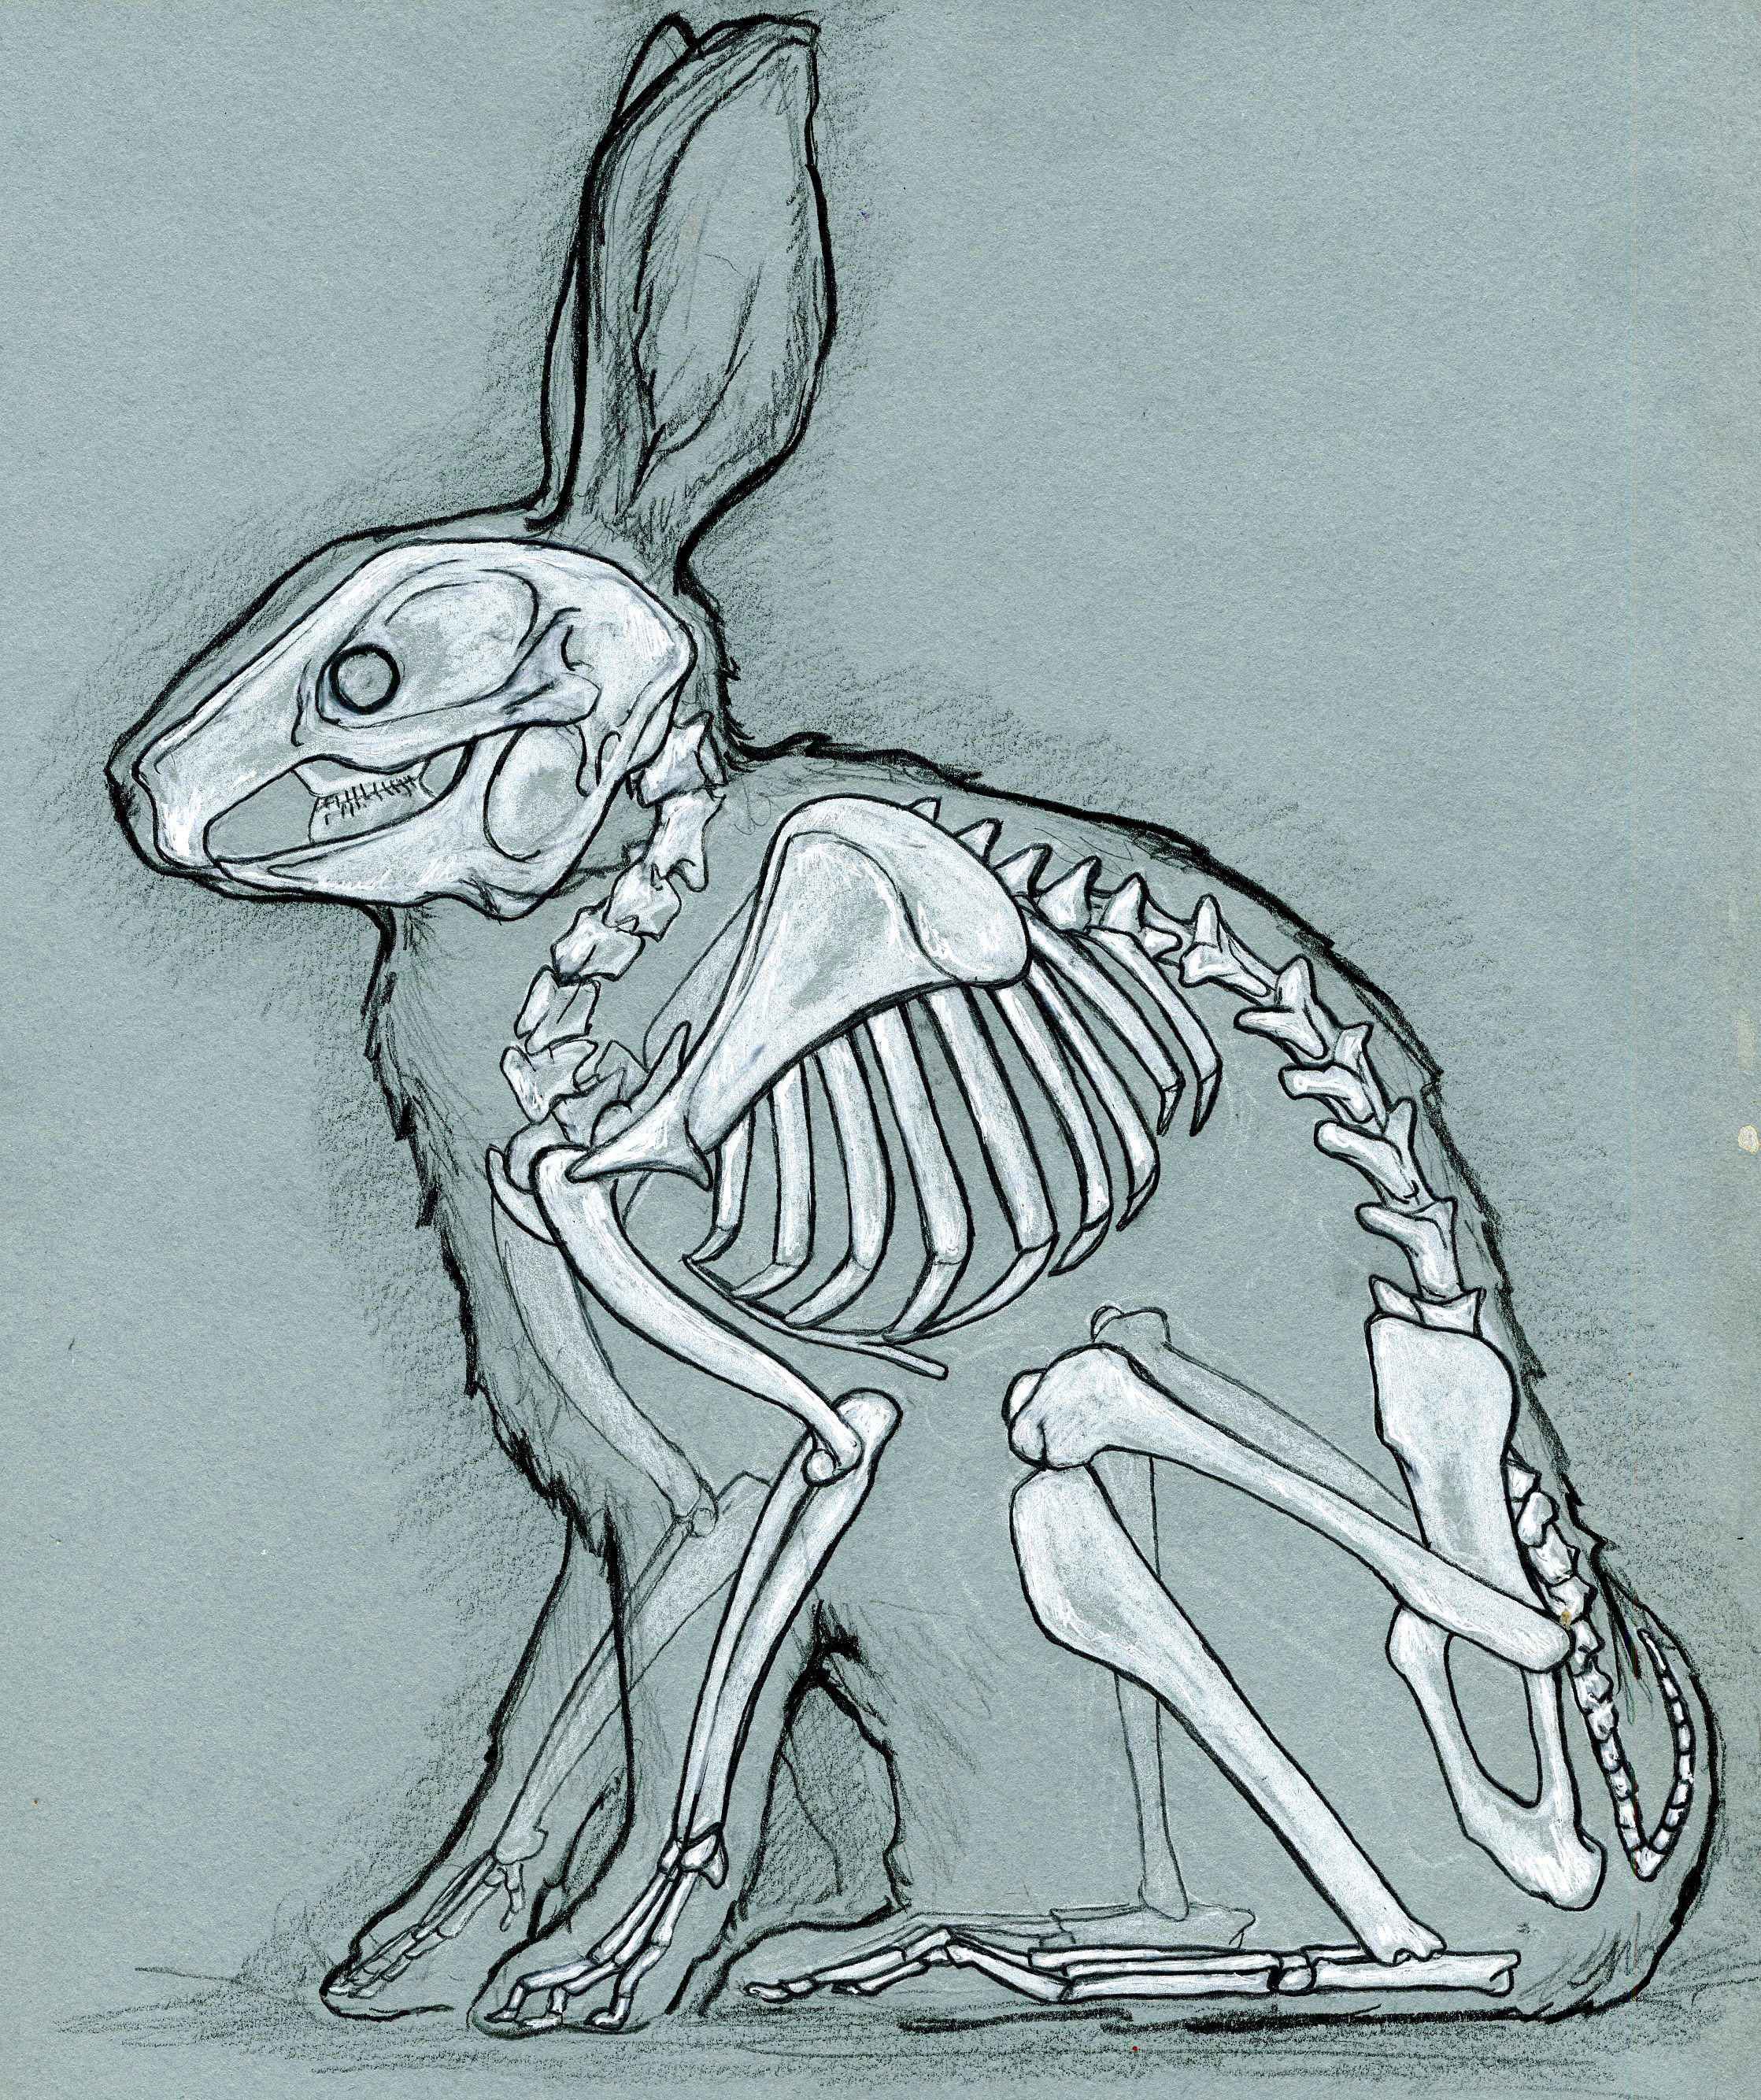 skeleton of a bunny | Life in Death | Pinterest | Skeletons, Bunny ...